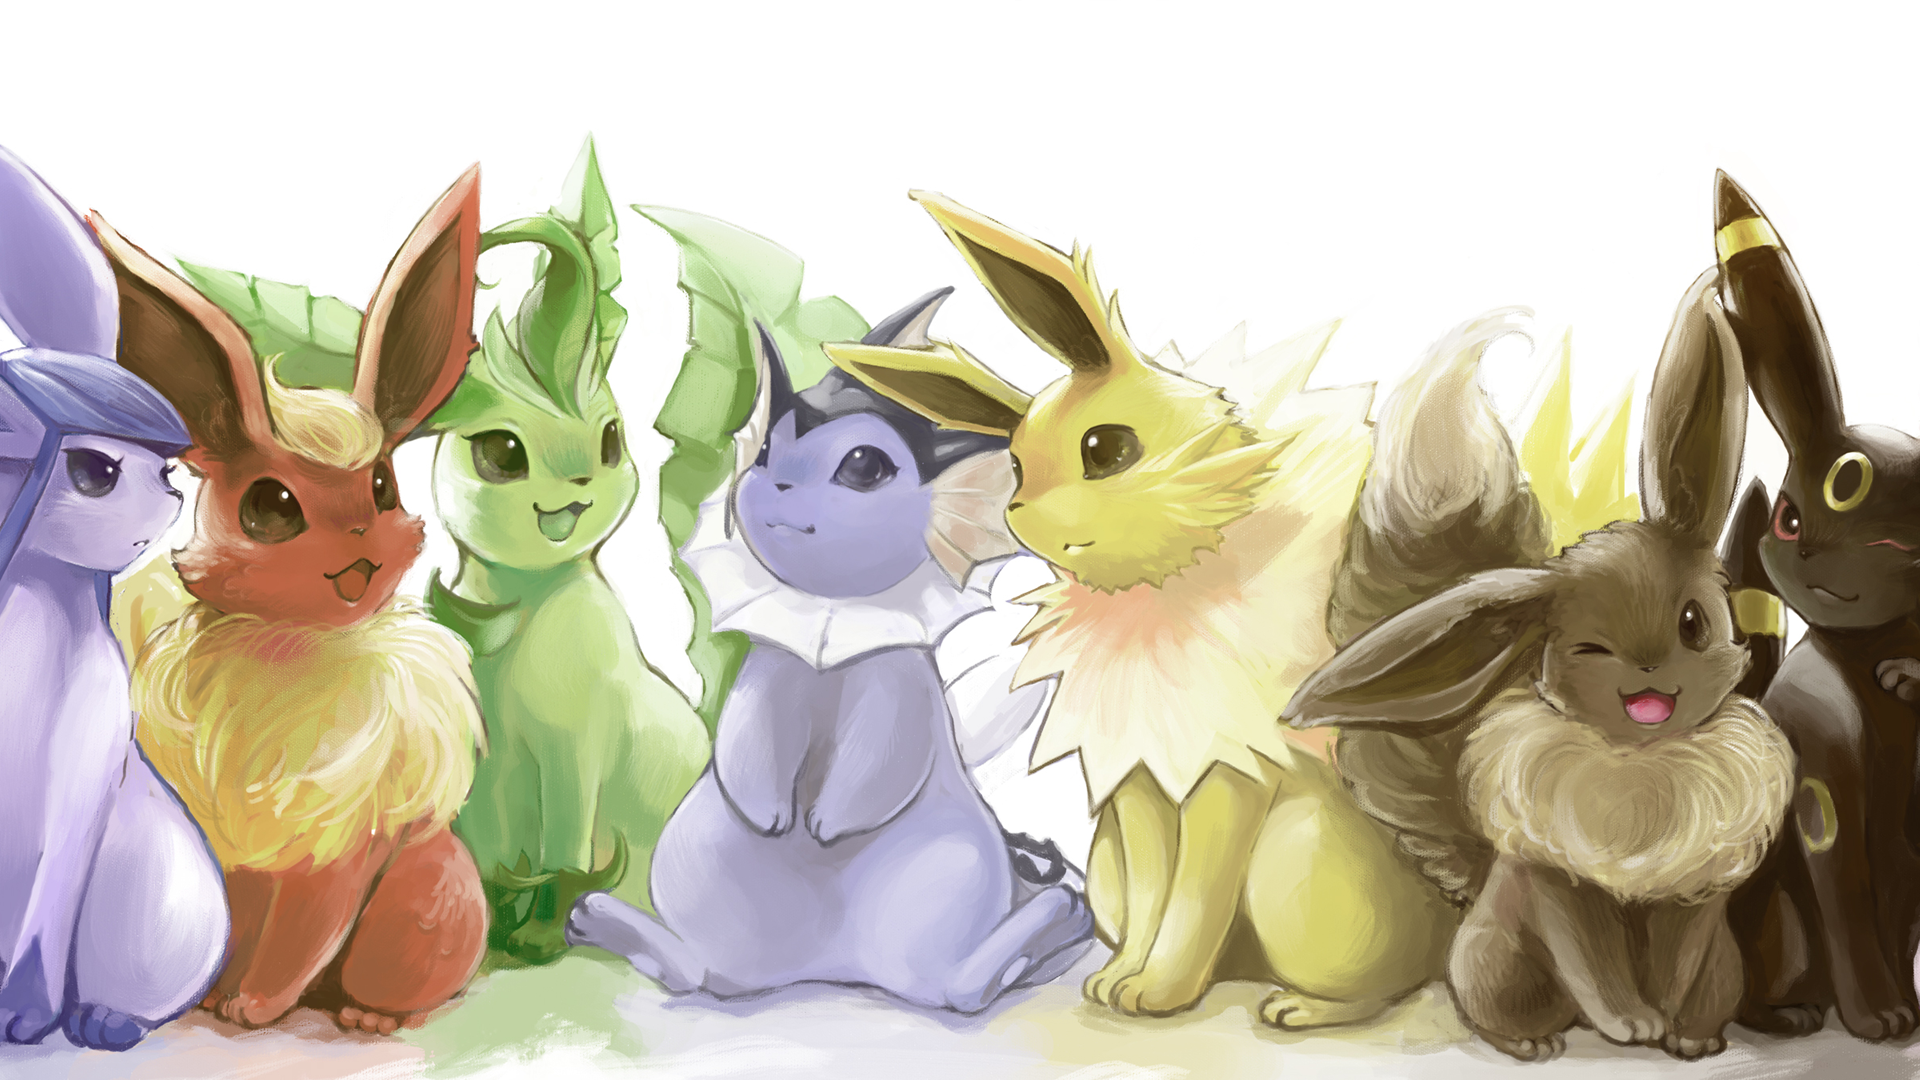 Pokemon-Eevee-Art-wallpaper-wpc5808154